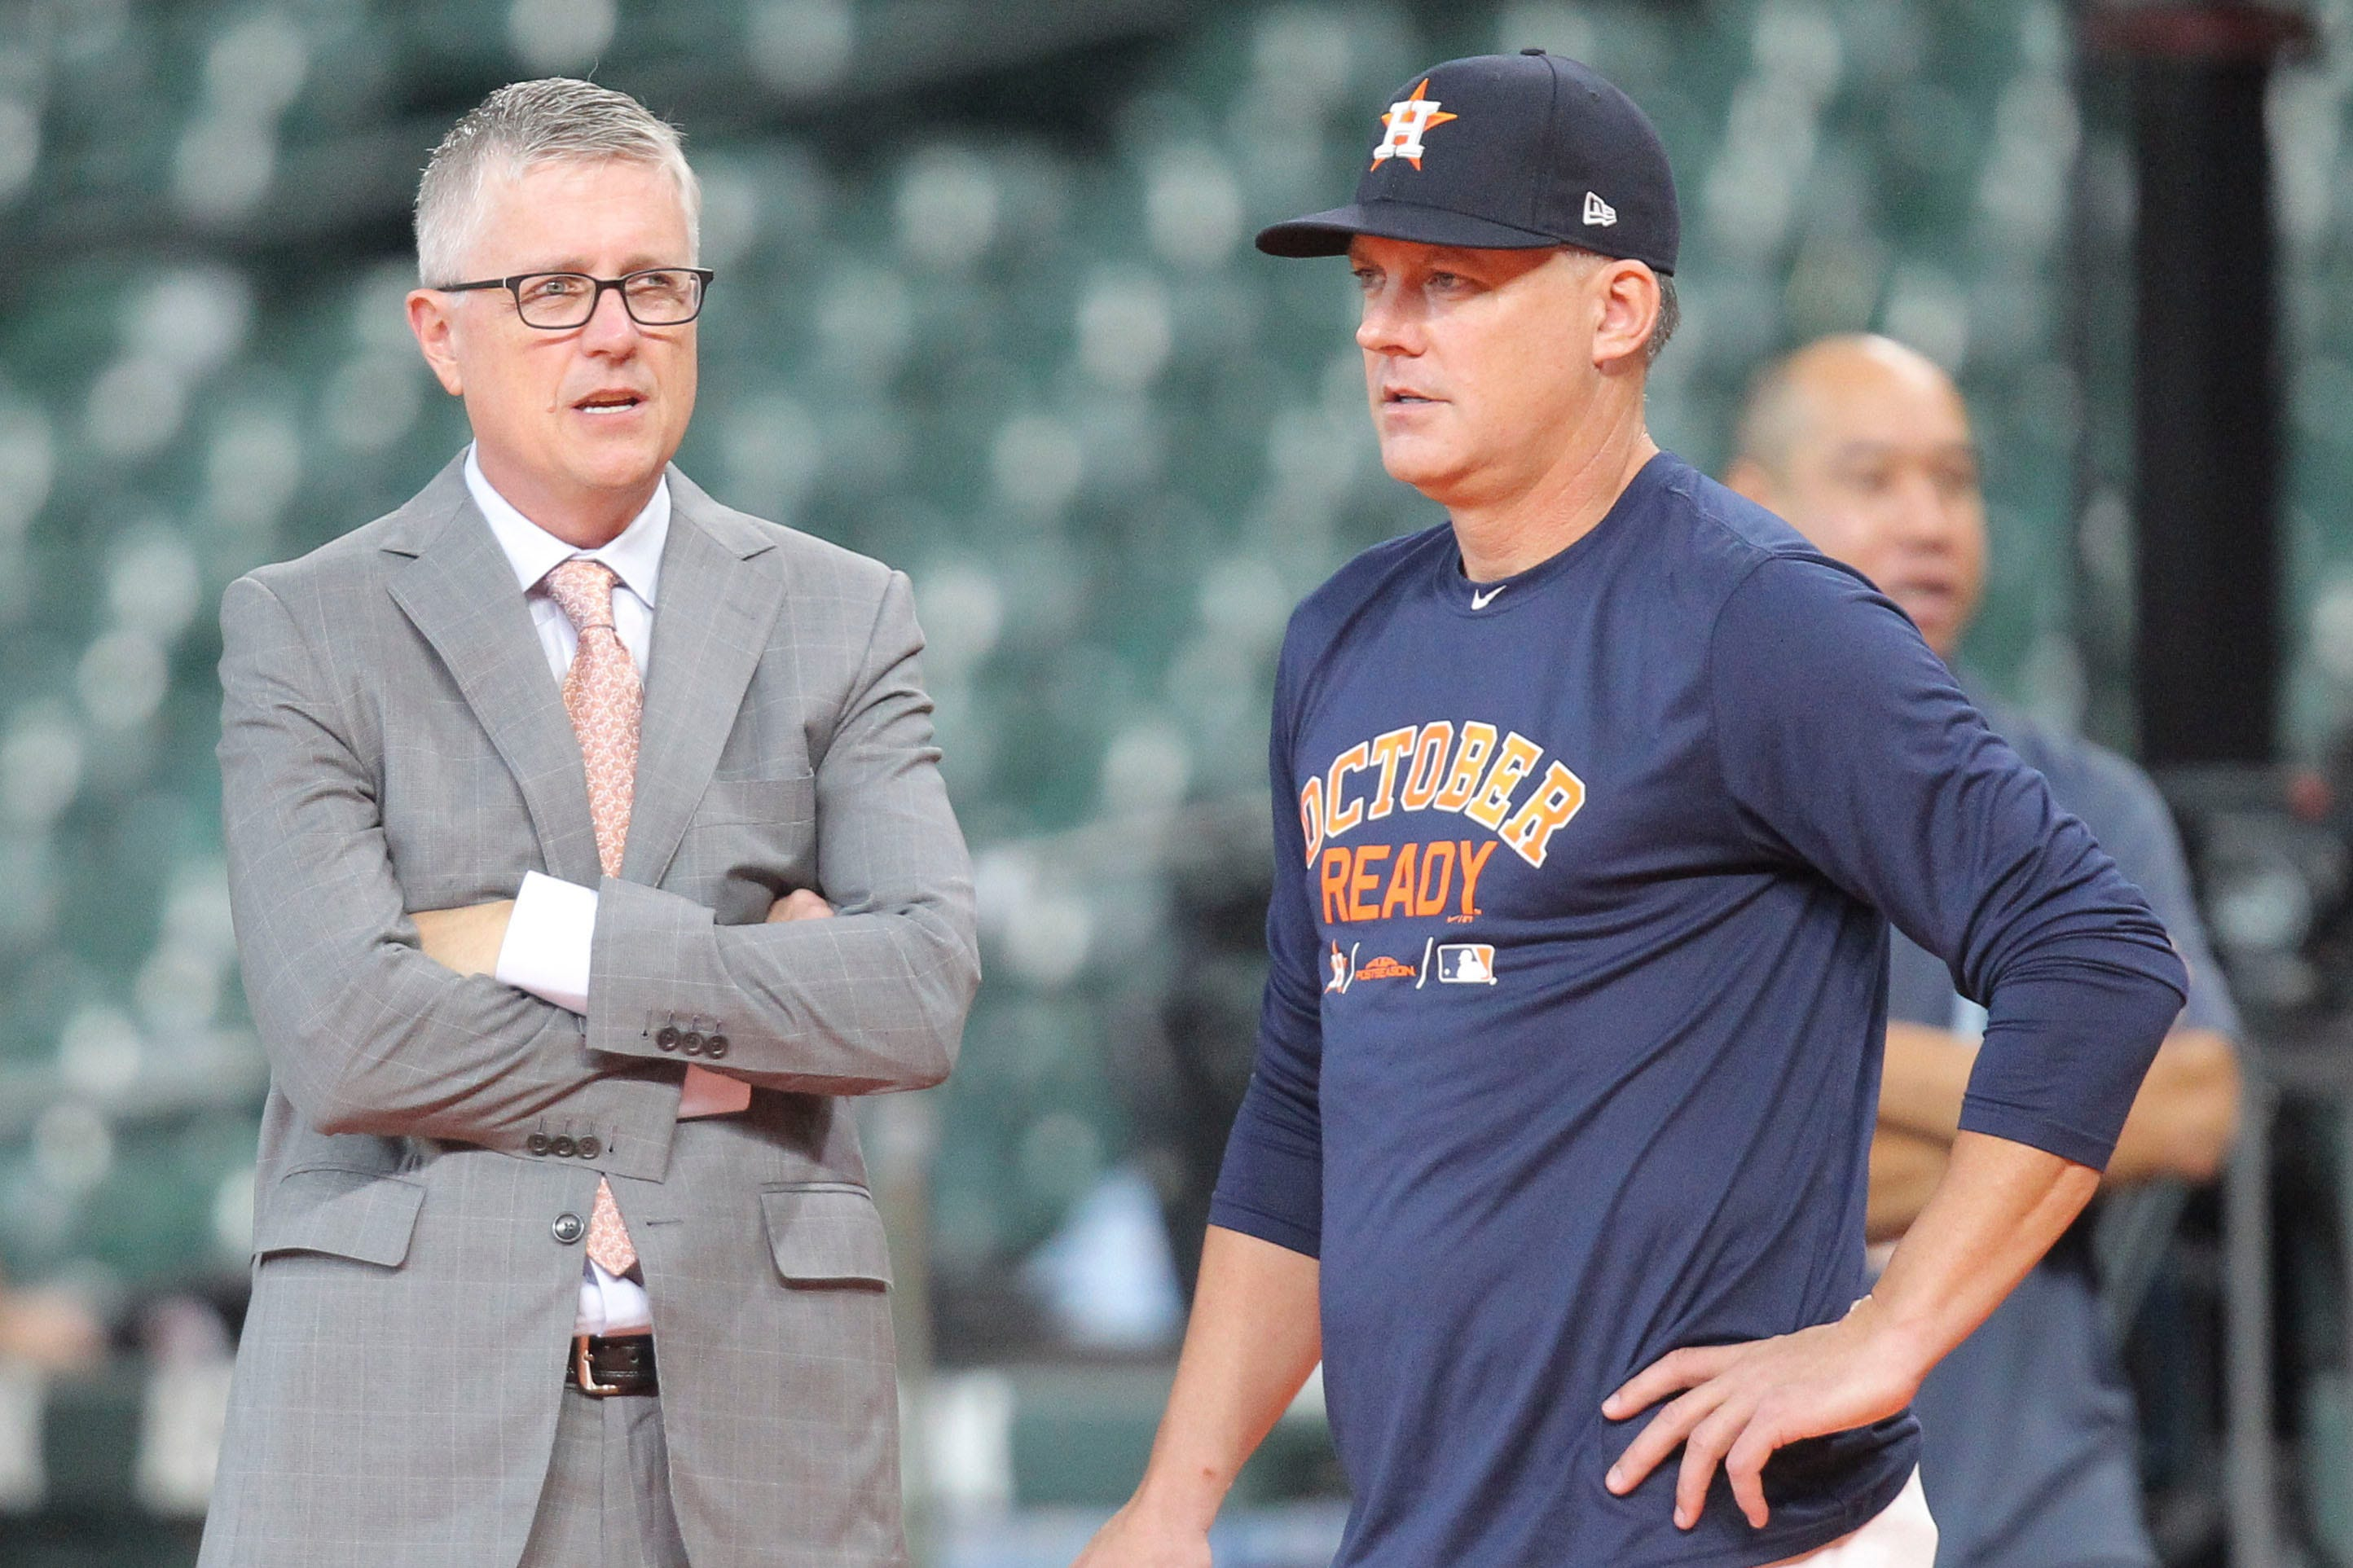 Opinion: Former Houston Astros execs sold out baseball, should never be near game again